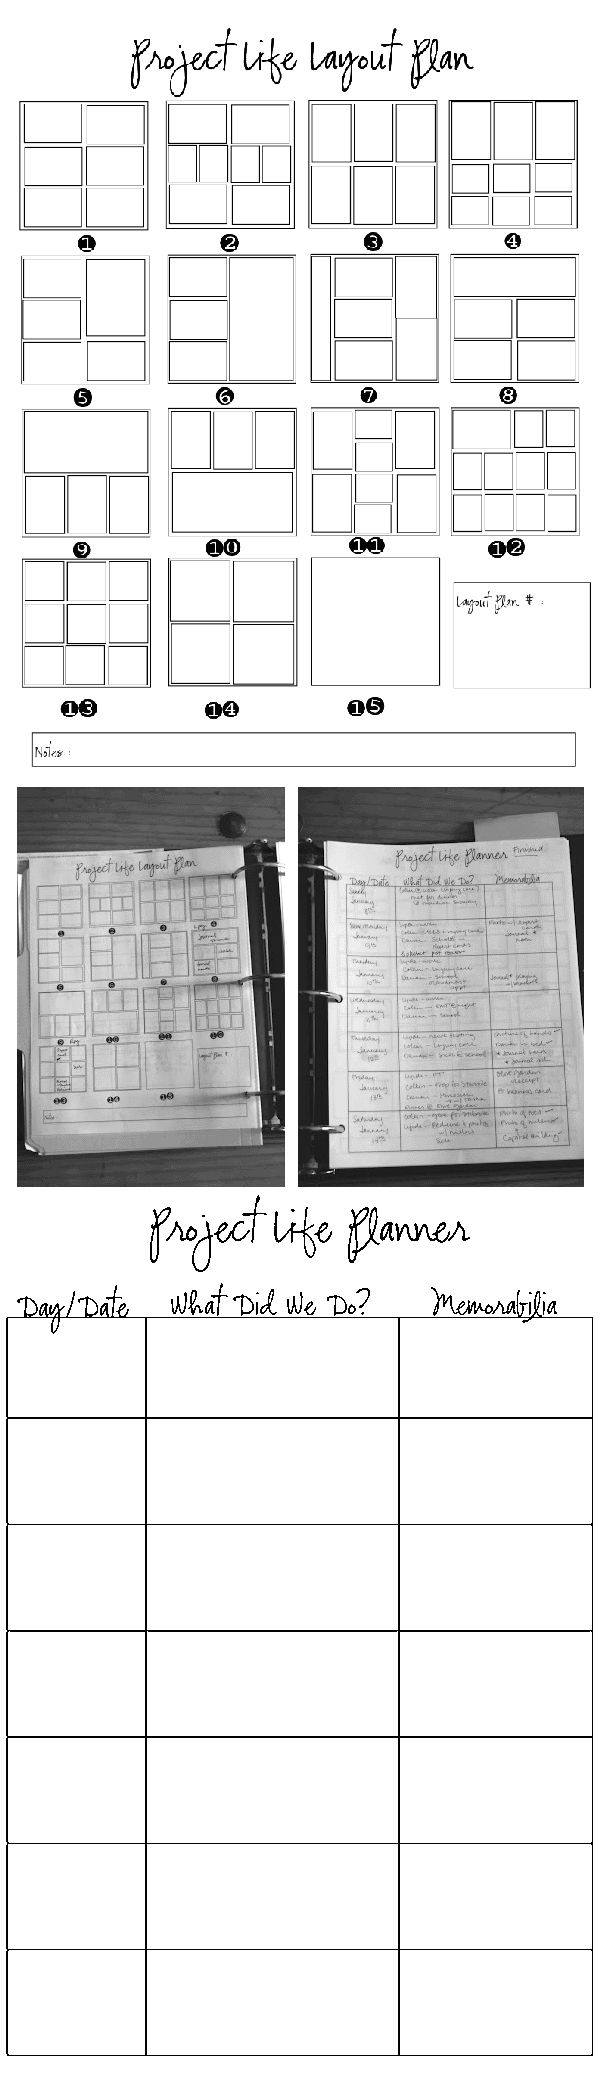 this is more intense than I am willing to engage in - but it looks interesting. project life planner sheets: free printables from Elle C